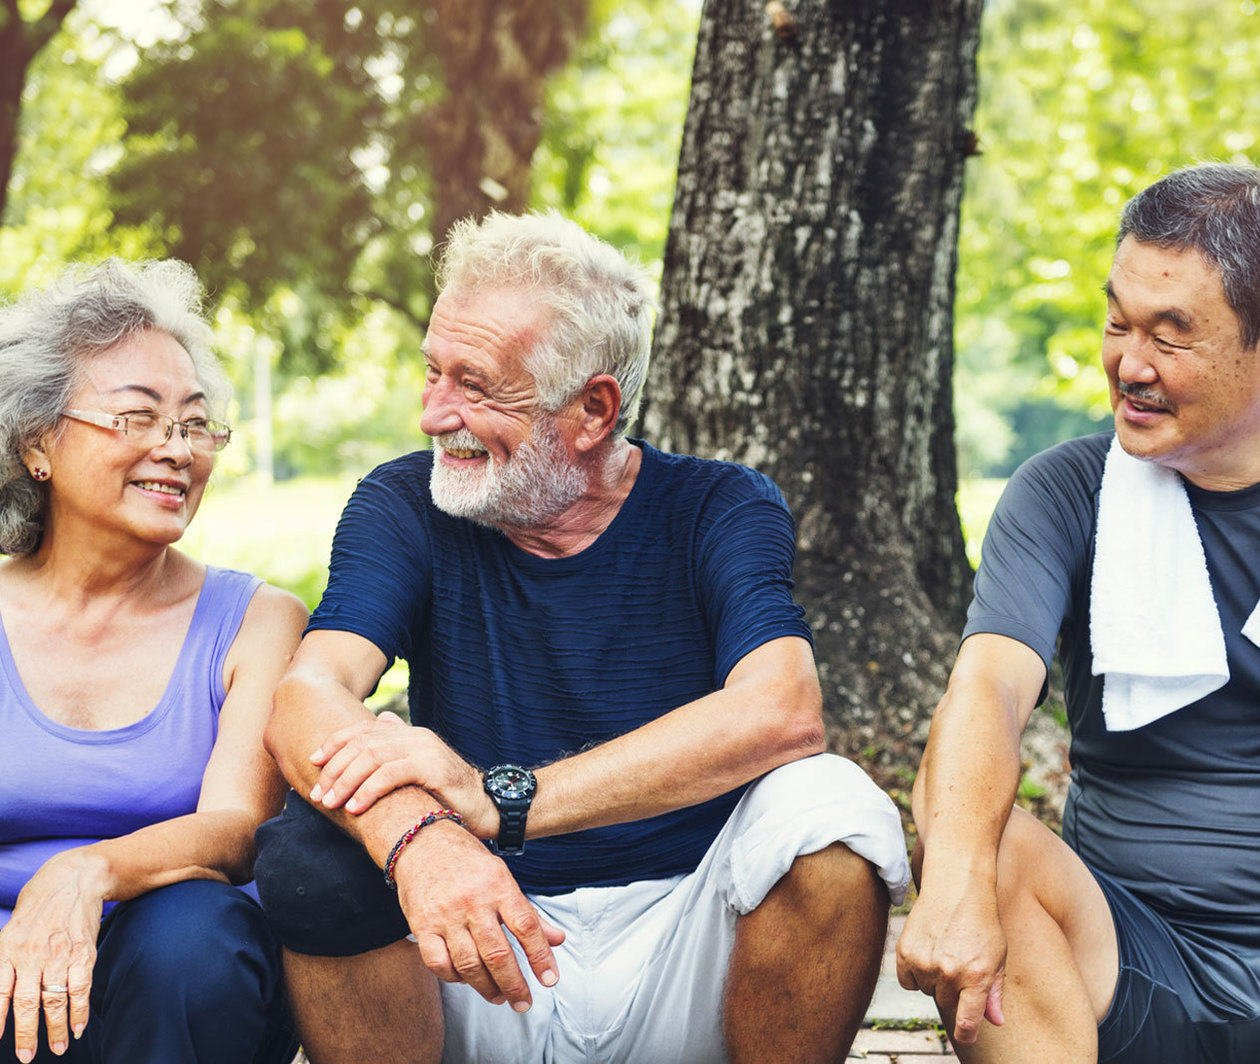 Aging Populations: Lessons In Healthy Aging From Japan